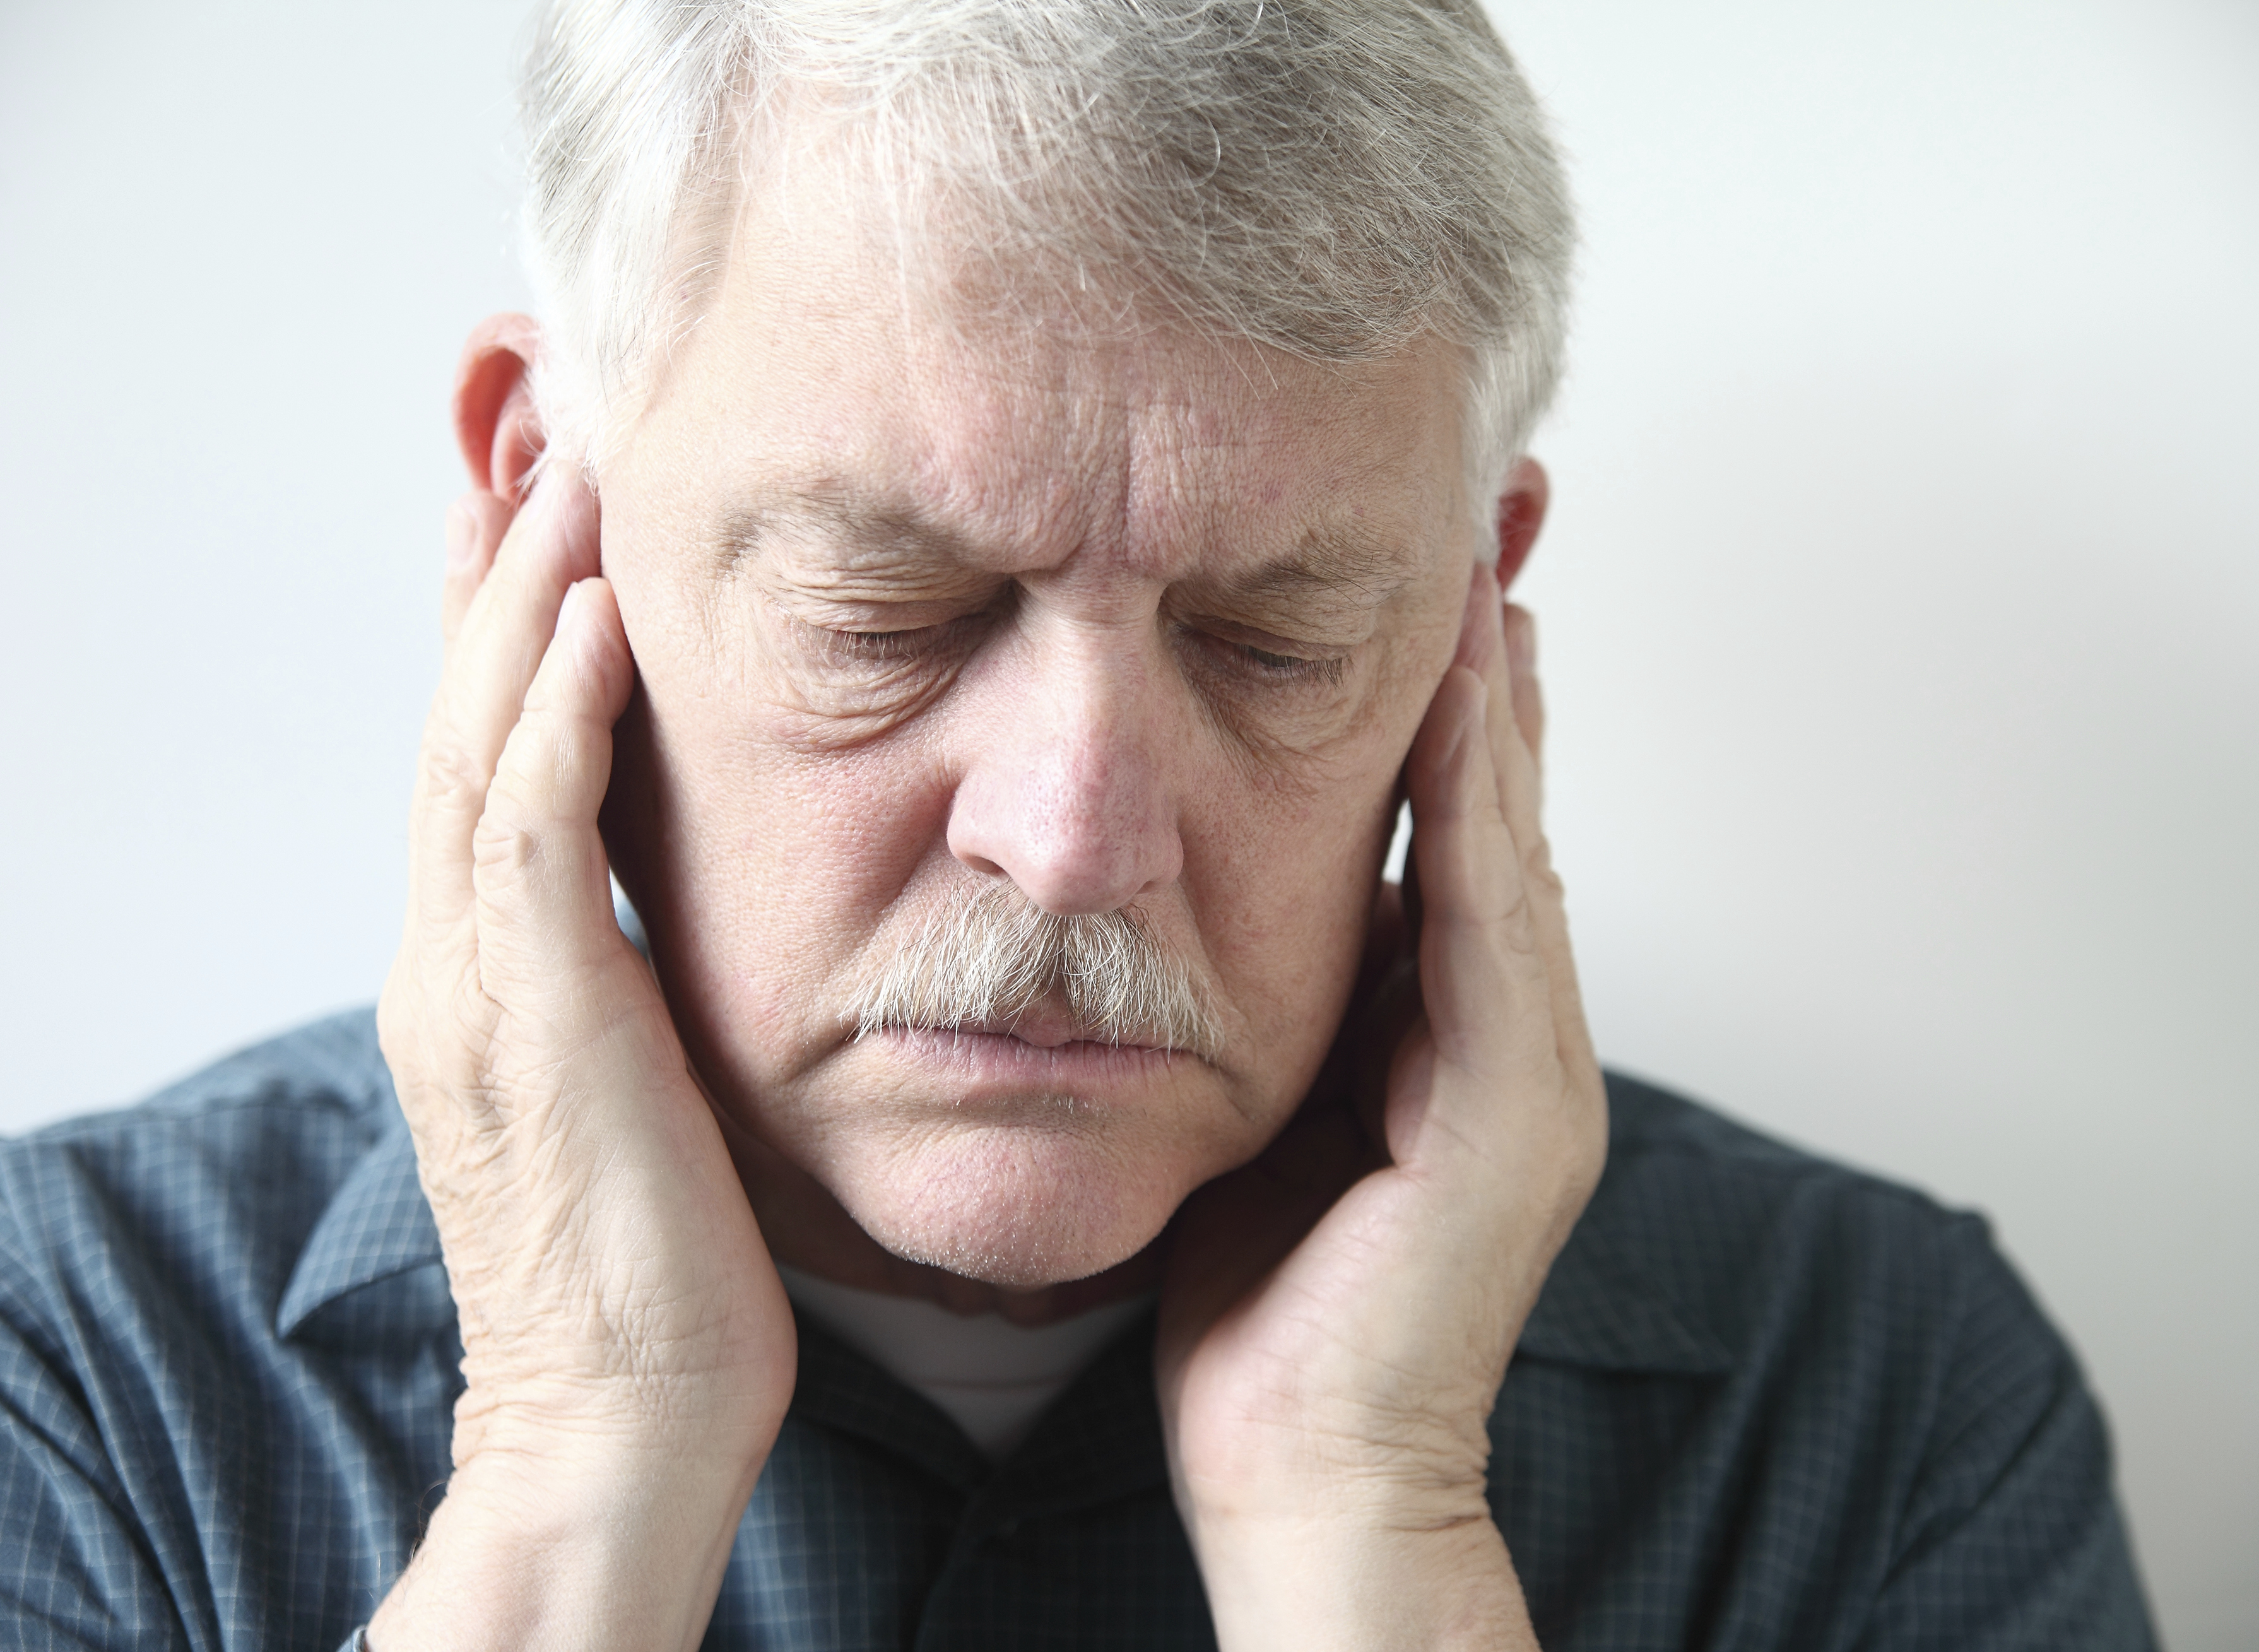 Signs, Symptoms and Treatment of TMJ